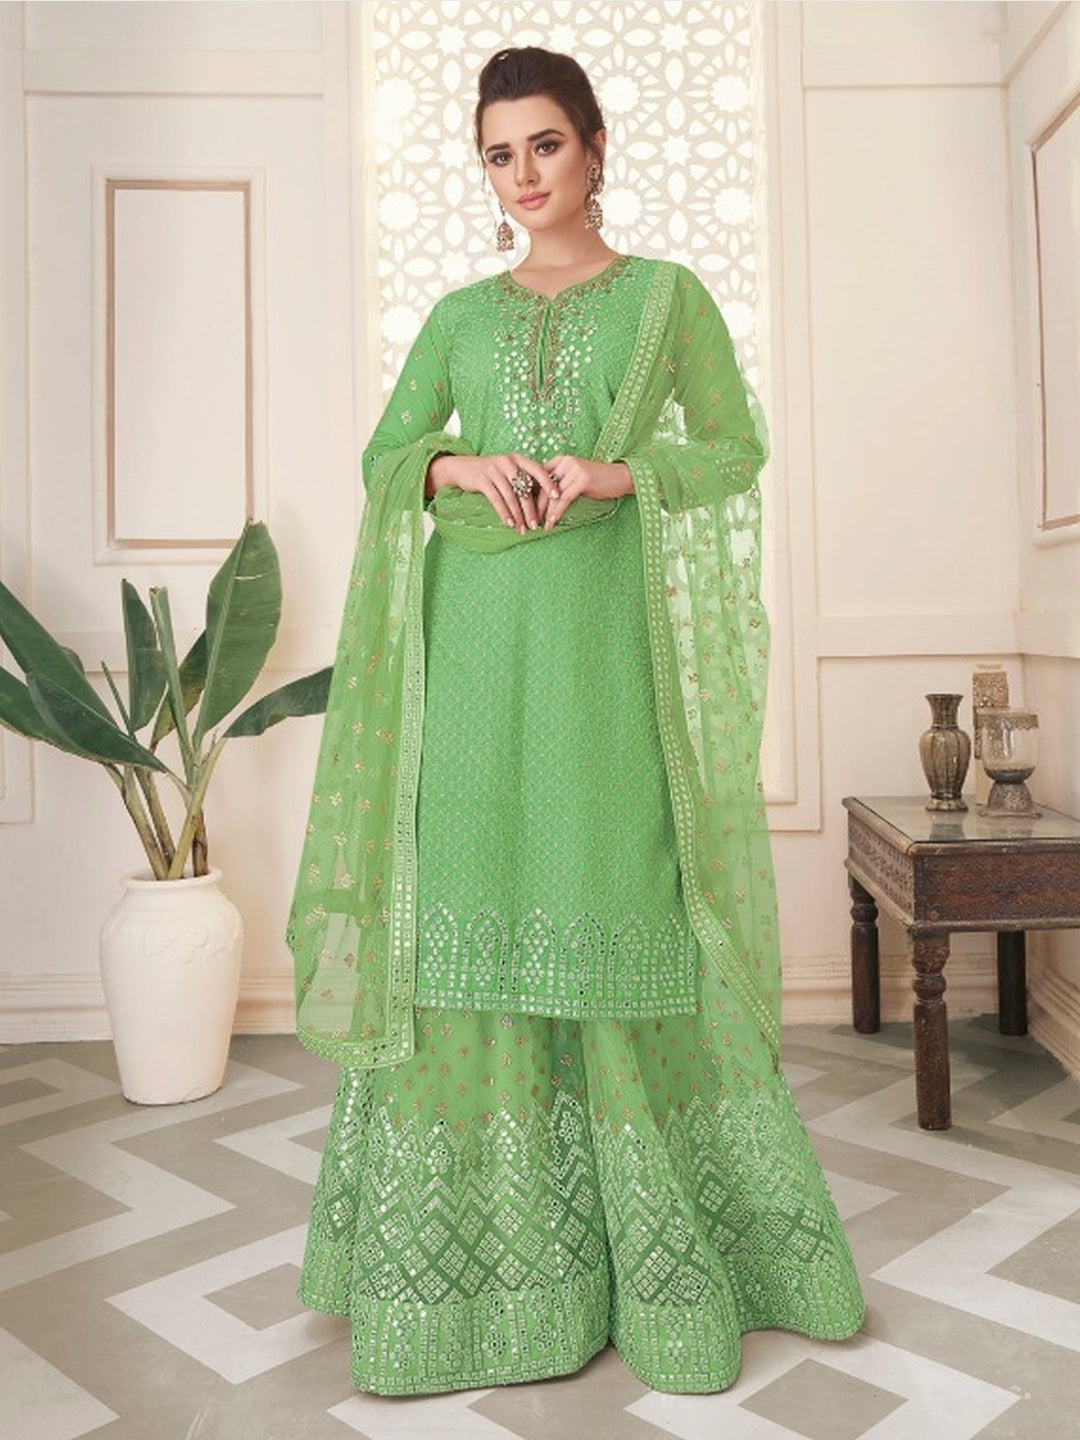 Embroidery on Georgette & Net